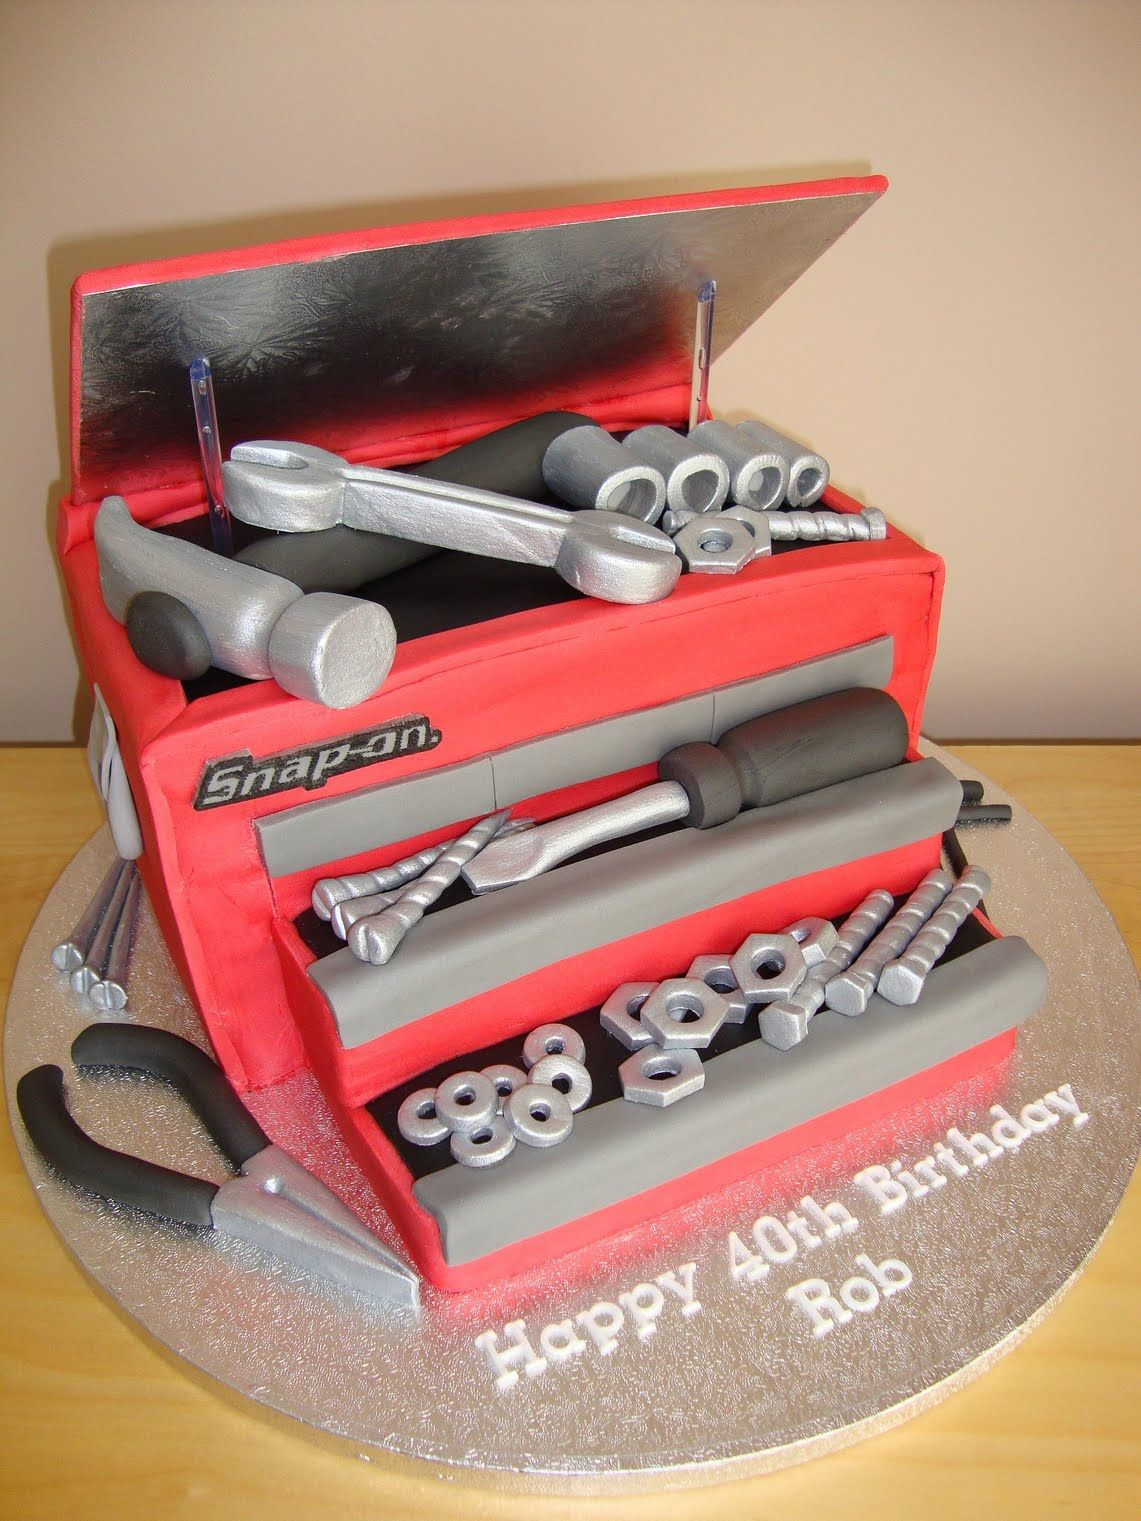 Cake Decorating Equipment Box : snap on toolbox Cakes Pinterest Toolbox, Cake ...